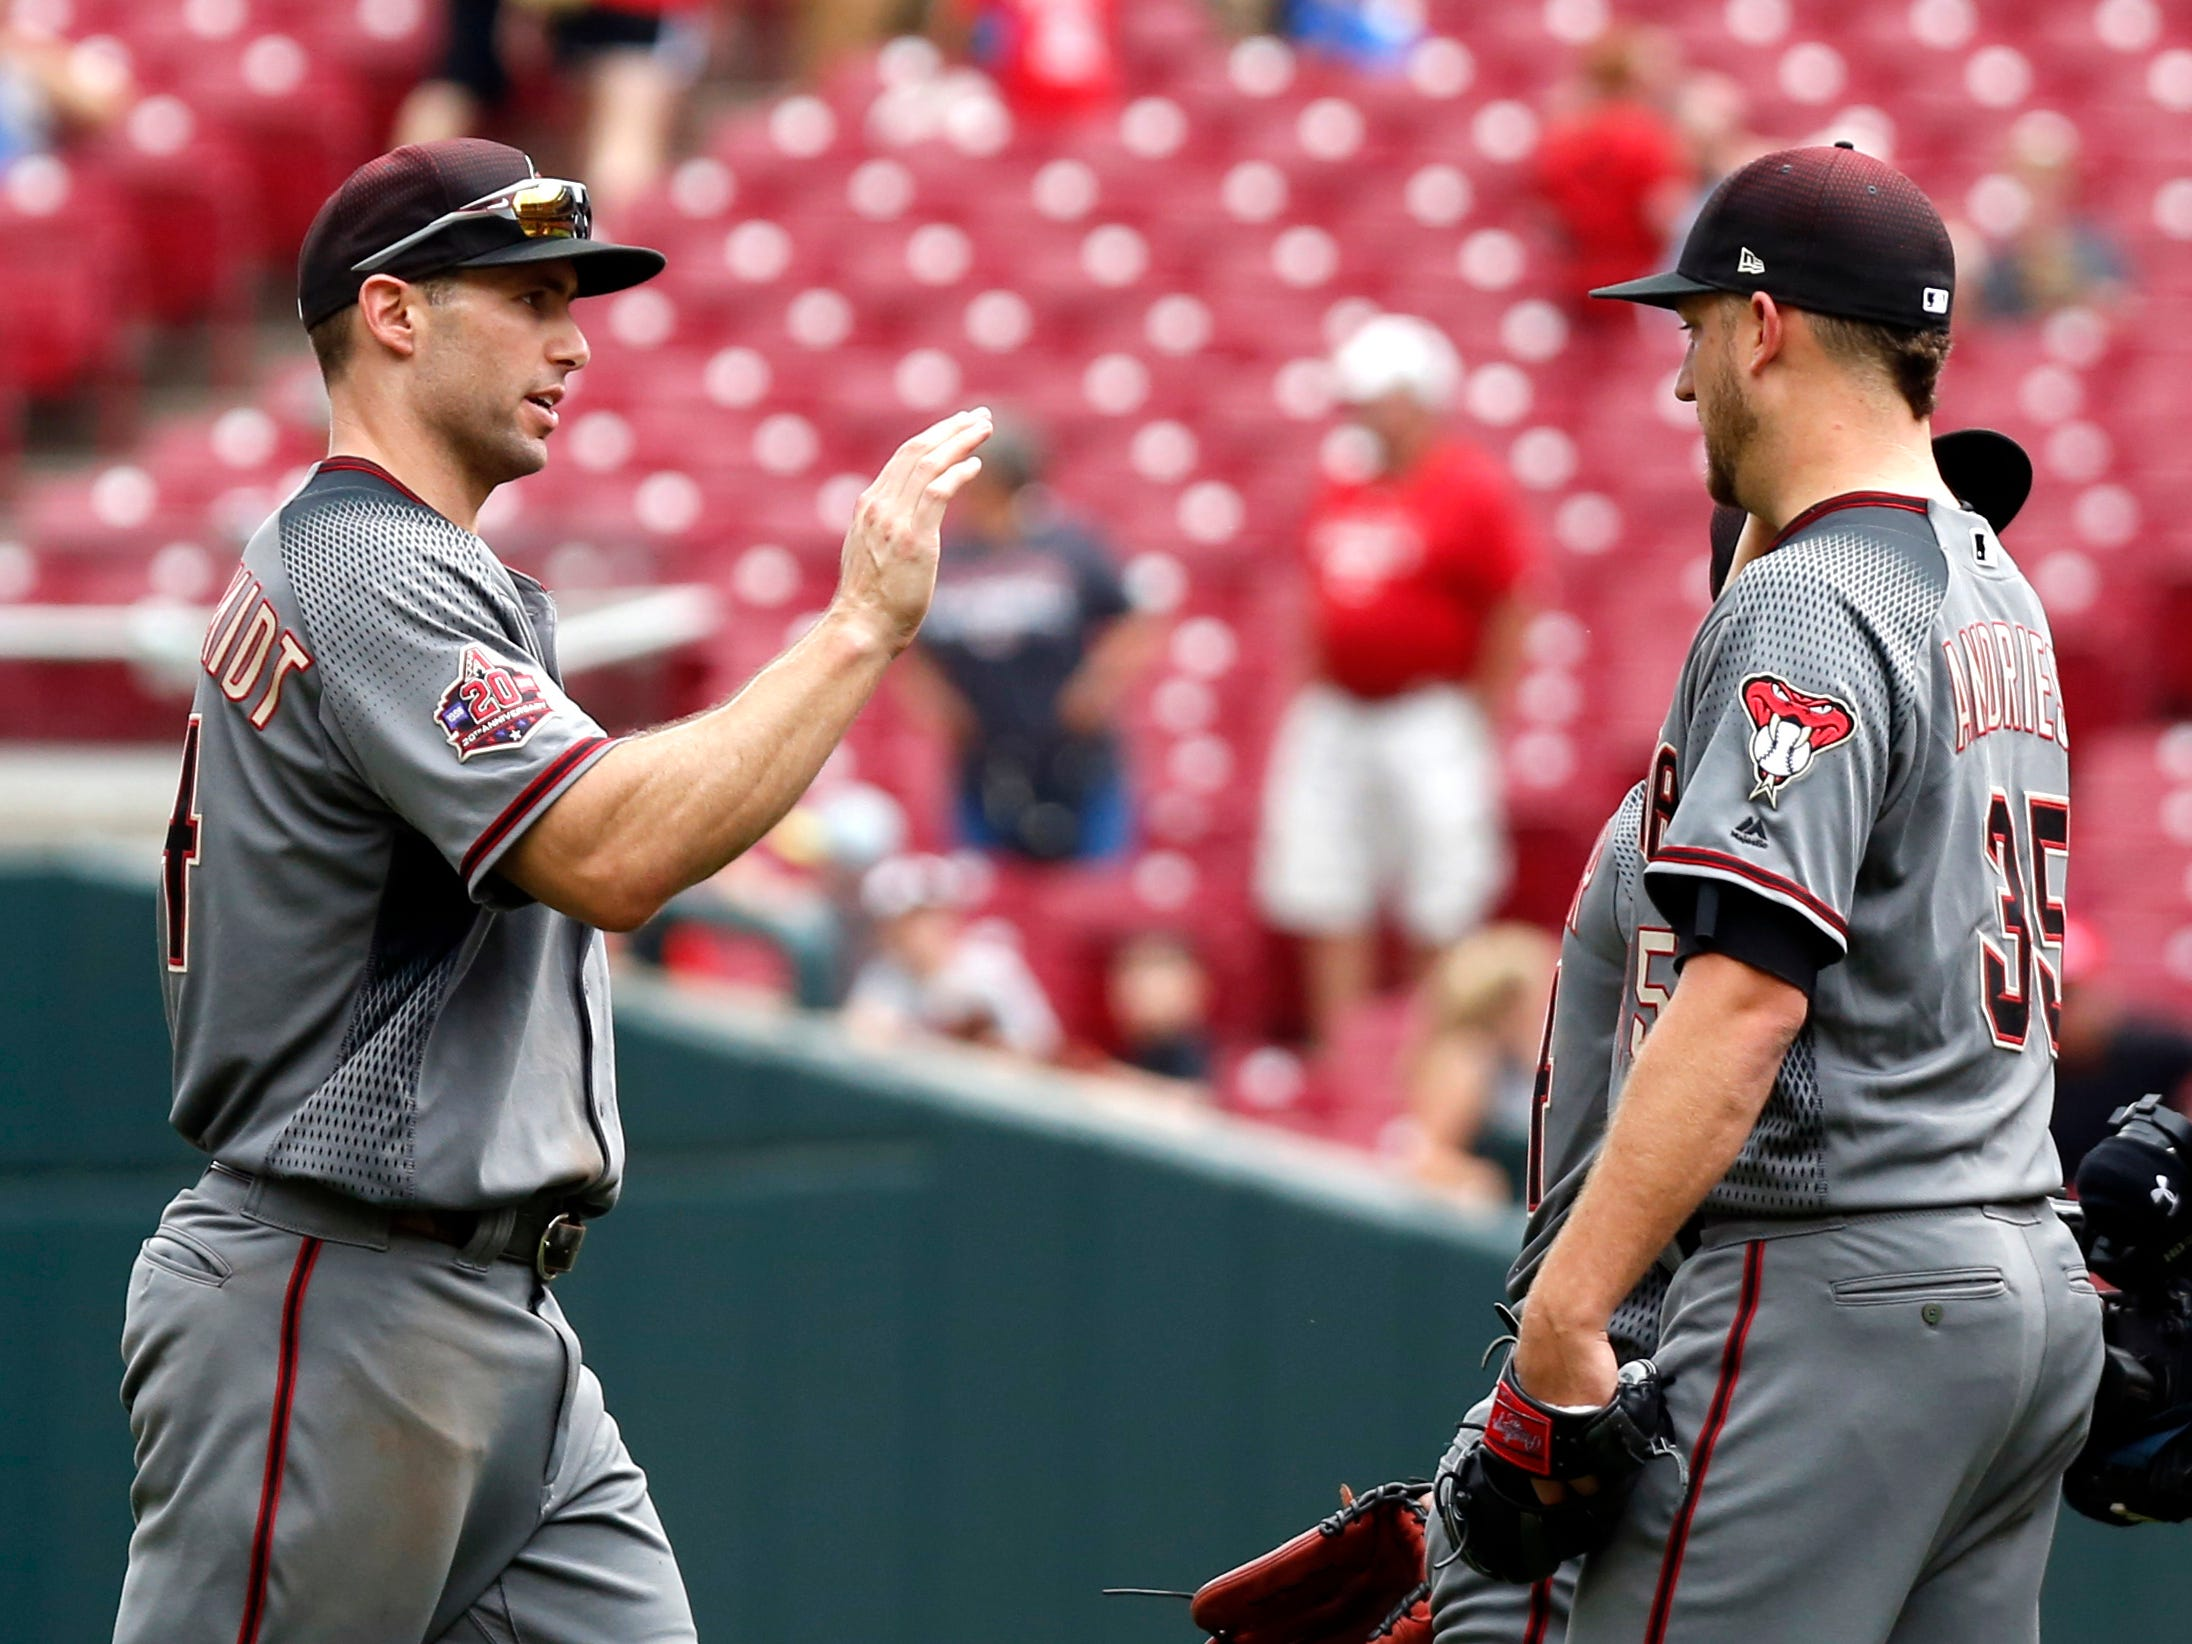 Aug 12, 2018; Cincinnati, OH, USA; Arizona Diamondbacks first baseman Paul Goldschmidt (44) and relief pitcher Matt Andriese (35) react after the Diamondbacks defeated the Cincinnati Reds at Great American Ball Park. Mandatory Credit: David Kohl-USA TODAY Sports